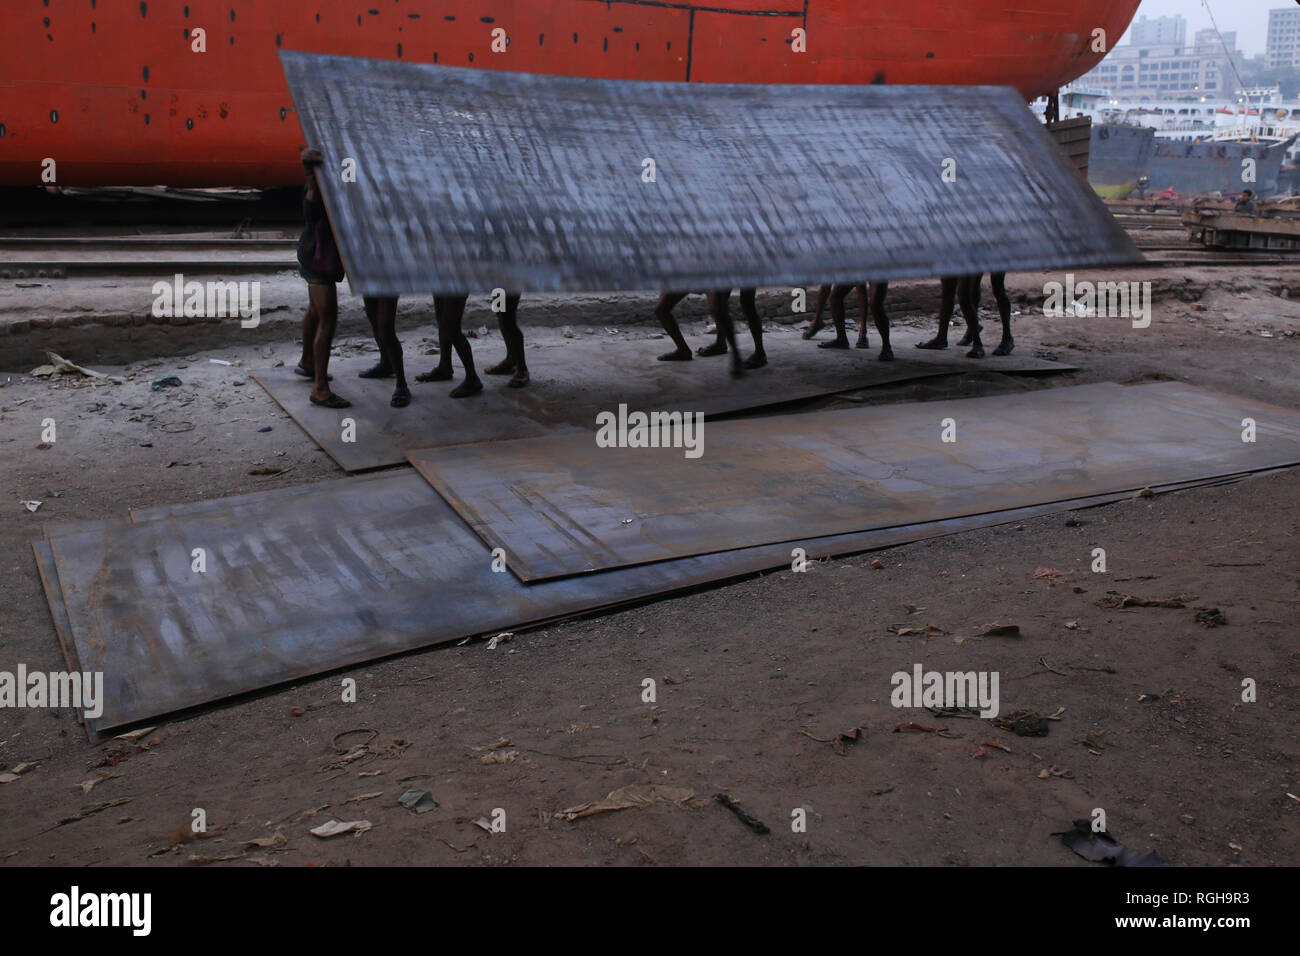 Workers carry a heavy piece of metal sheet at a Shipyard in Dhaka, Bangladesh on January 29, 2019. Dozens dockyards occupying 30.96 acres of the Buriganga foreshore have been in operation for the last 50 years. It is mostly utilized for fixing and repairing old ships, build in new ships. Labors work in the dockyard without helmets, face mask, or safety shoes as their ages from 8 to 80 years old. Nearly 15,000 labors including children work in this yard from dawn to dusk as they get paid about $5 each day. © Rehman Asad / Alamy Stock Photo Stock Photo